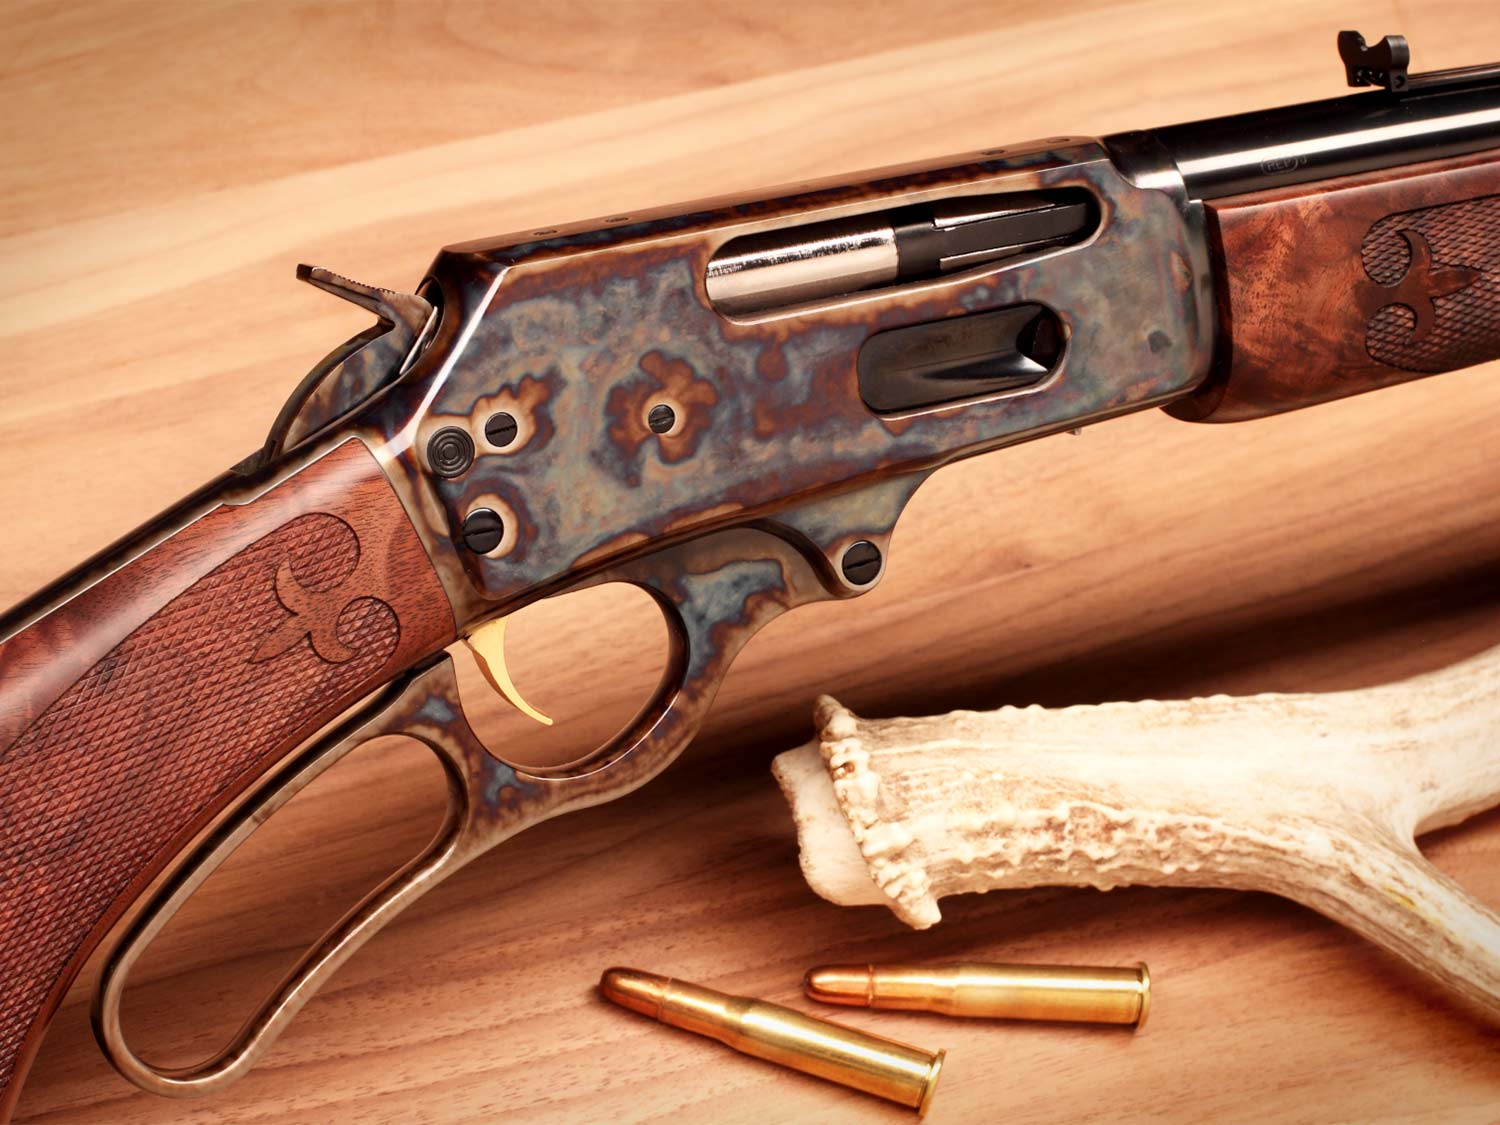 A close up image of a lever-action rifle on a wooden floor.